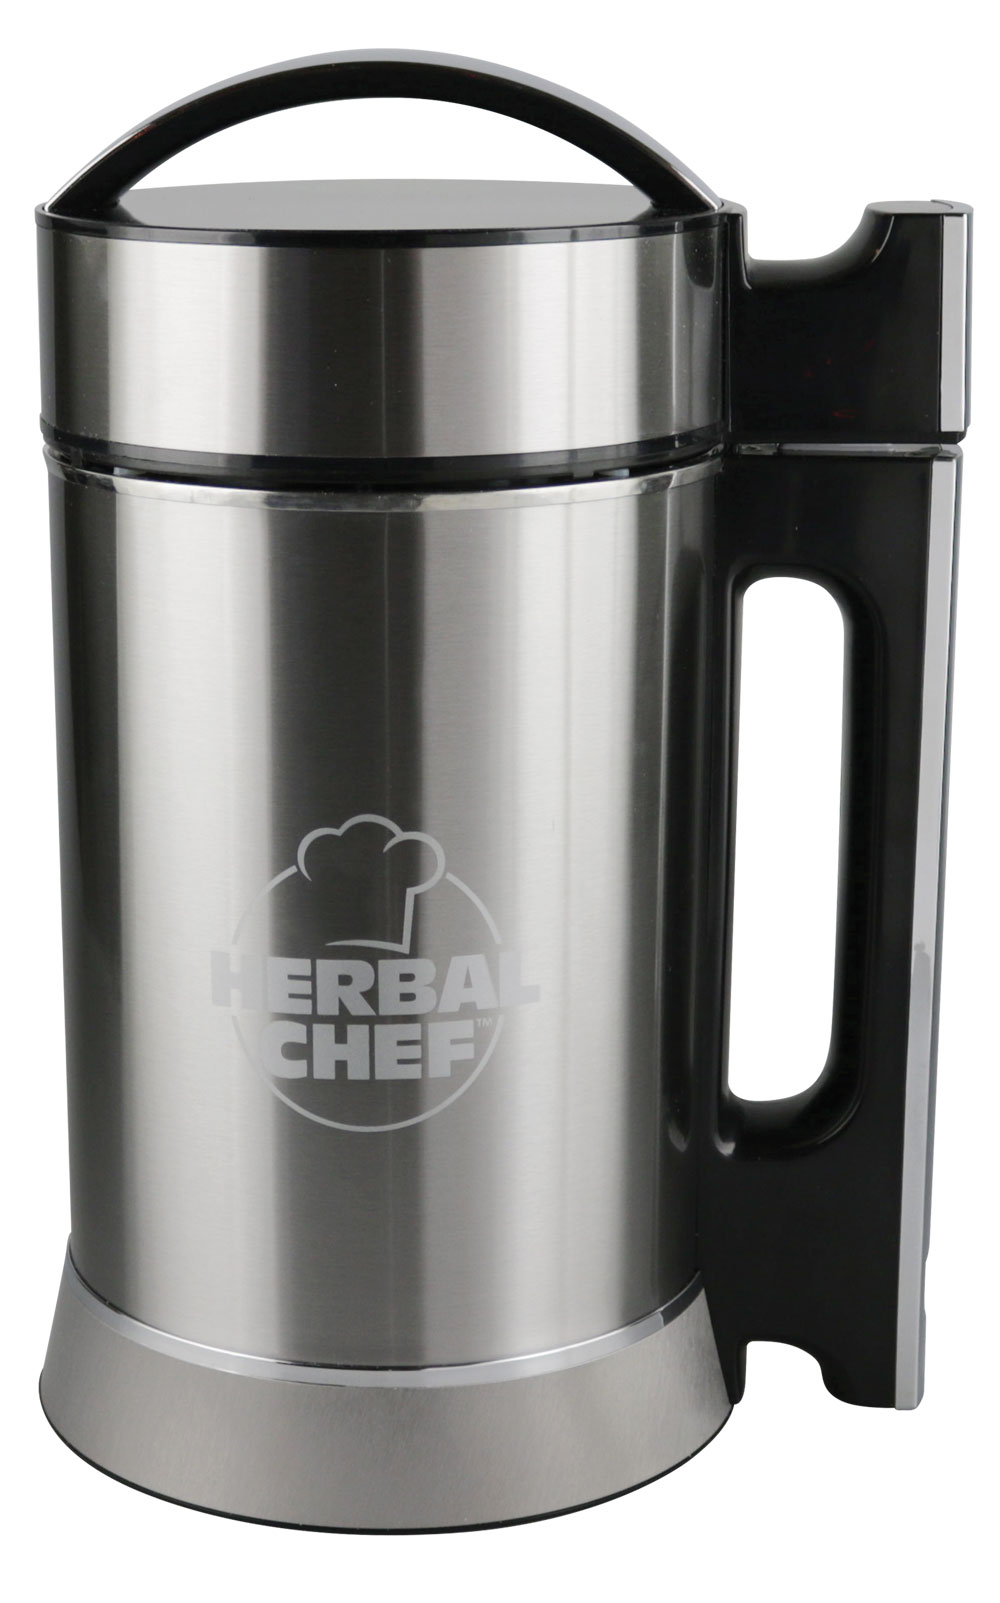 Herbal Chef Electric Infuser - 5 Cup - AFG Distribution